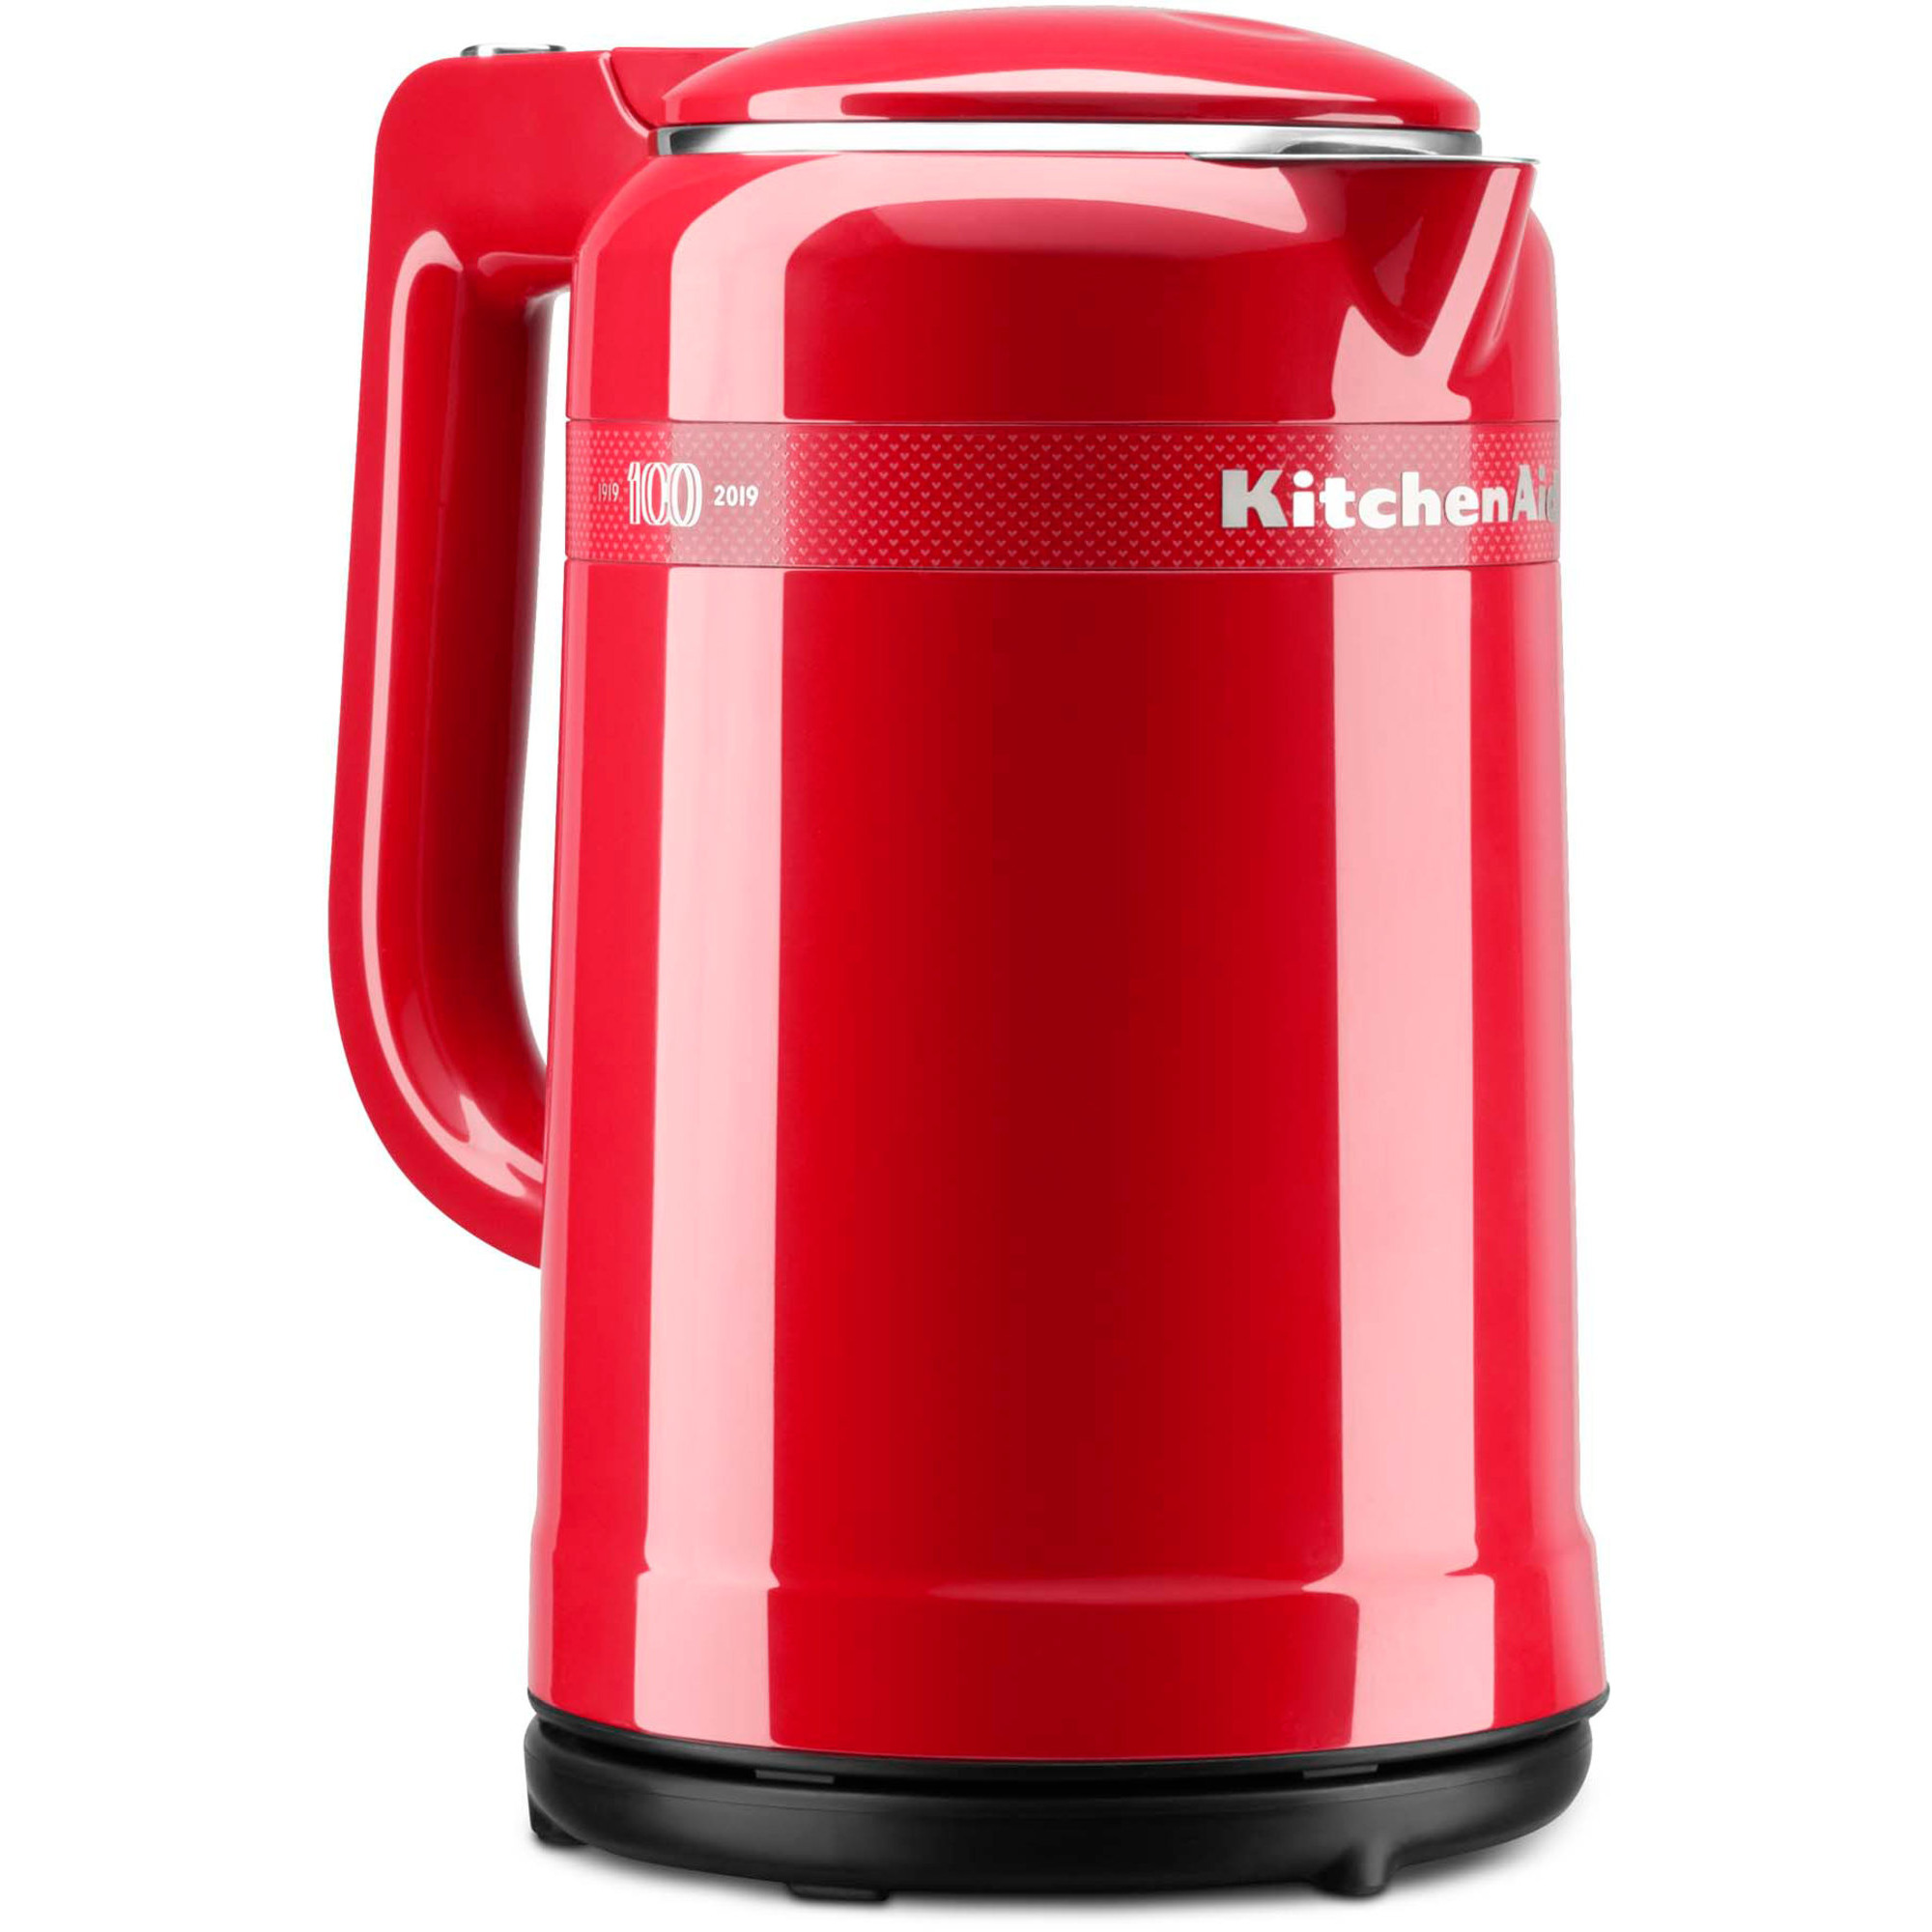 KitchenAid Vattenkokare 1.5L – 100 Year Limited Edition – Queen of Hearts Collection